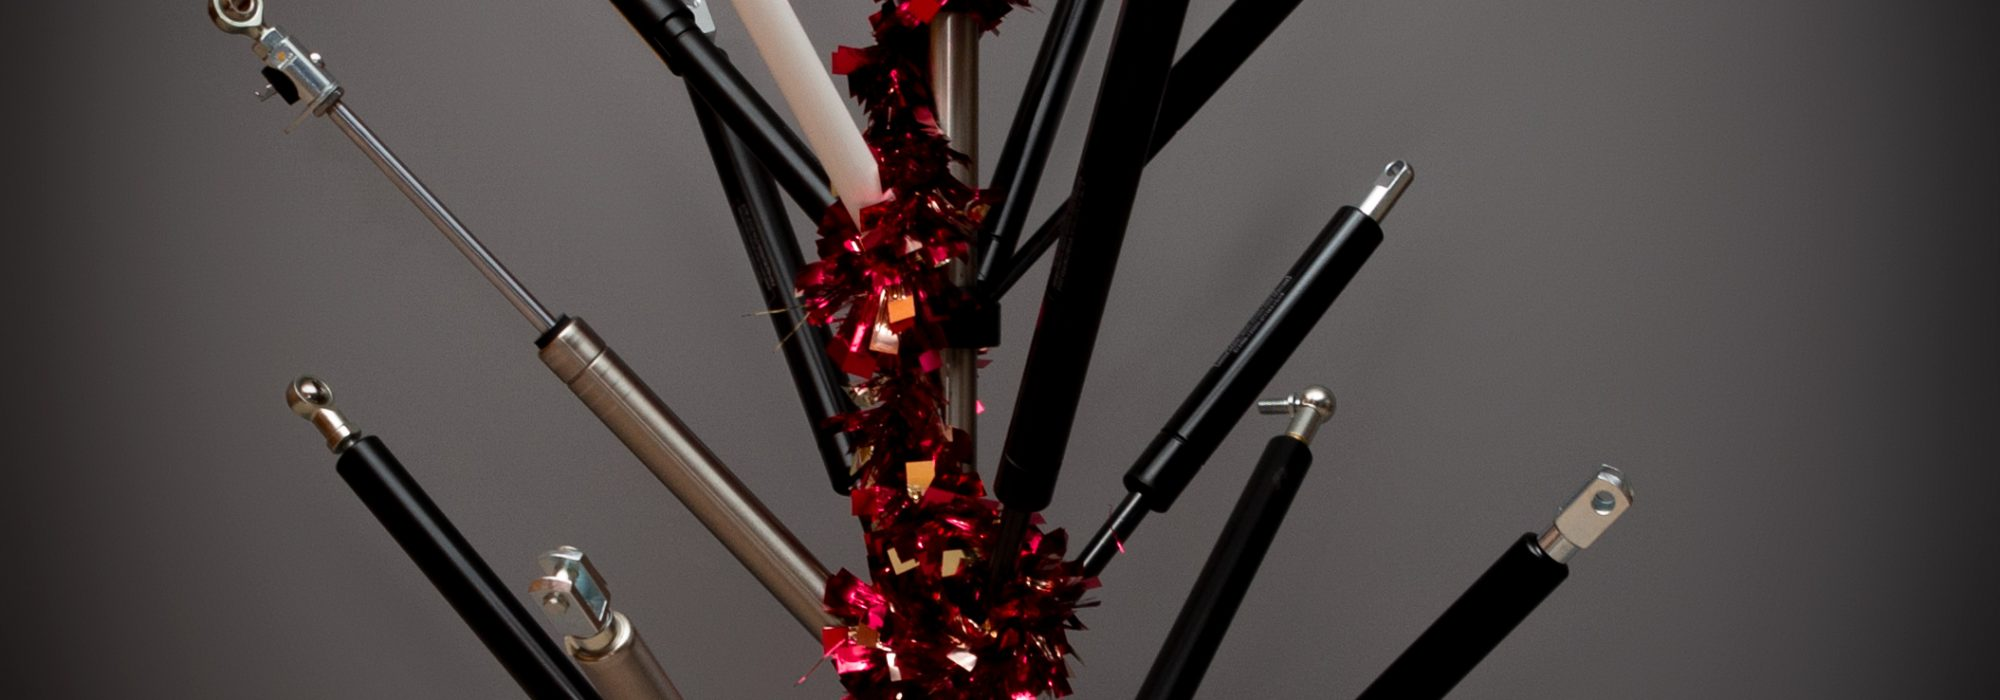 CamlocChristmas002 1 2000x700 - We're spreading extra festive cheer with our gas strut Christmas tree!